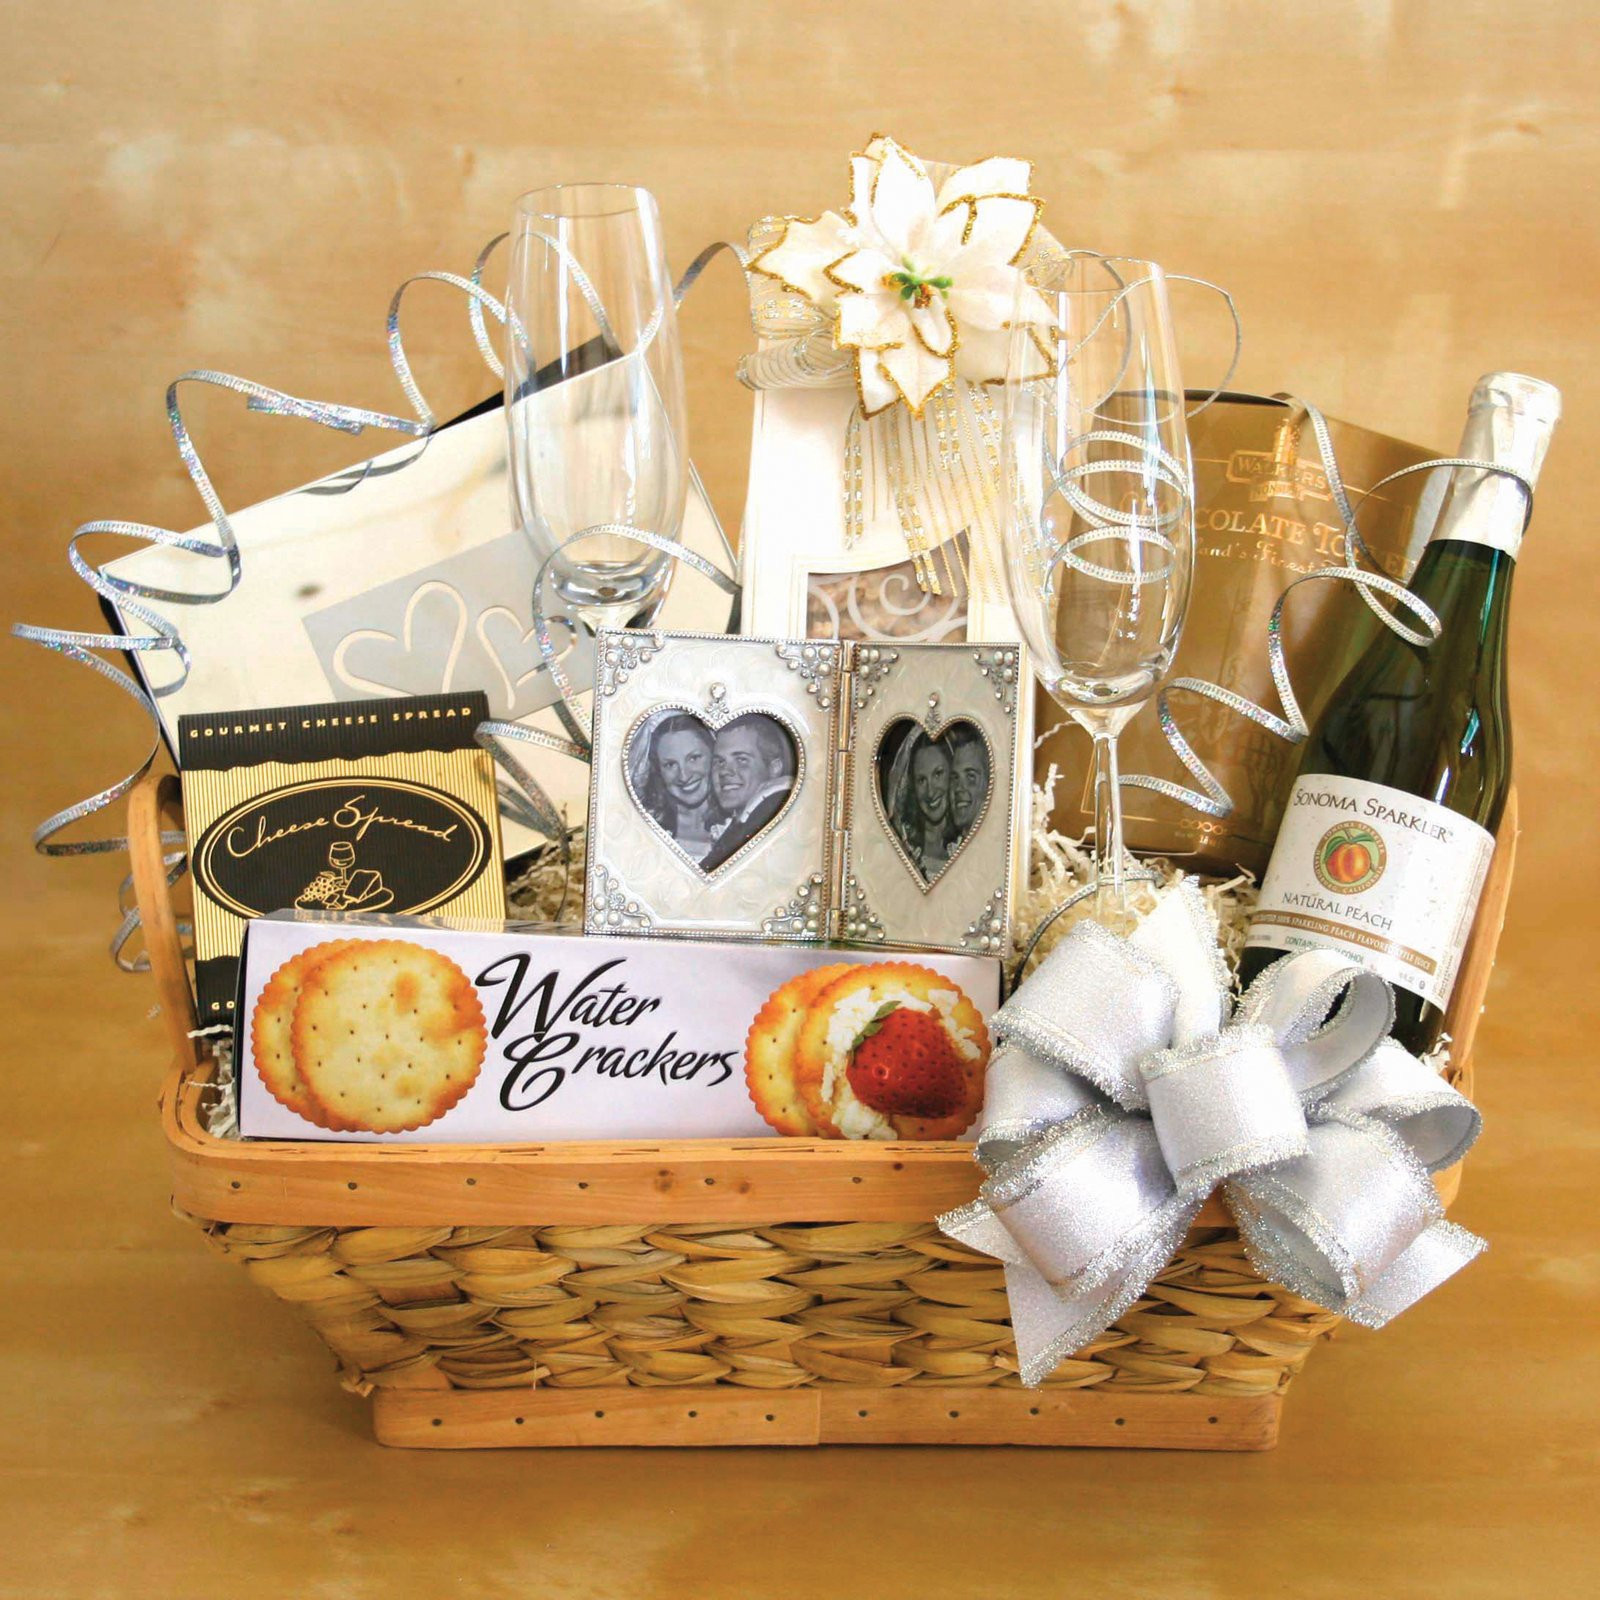 Best ideas about Wedding Reception Gift Ideas . Save or Pin Simple Wedding Gifts Now.